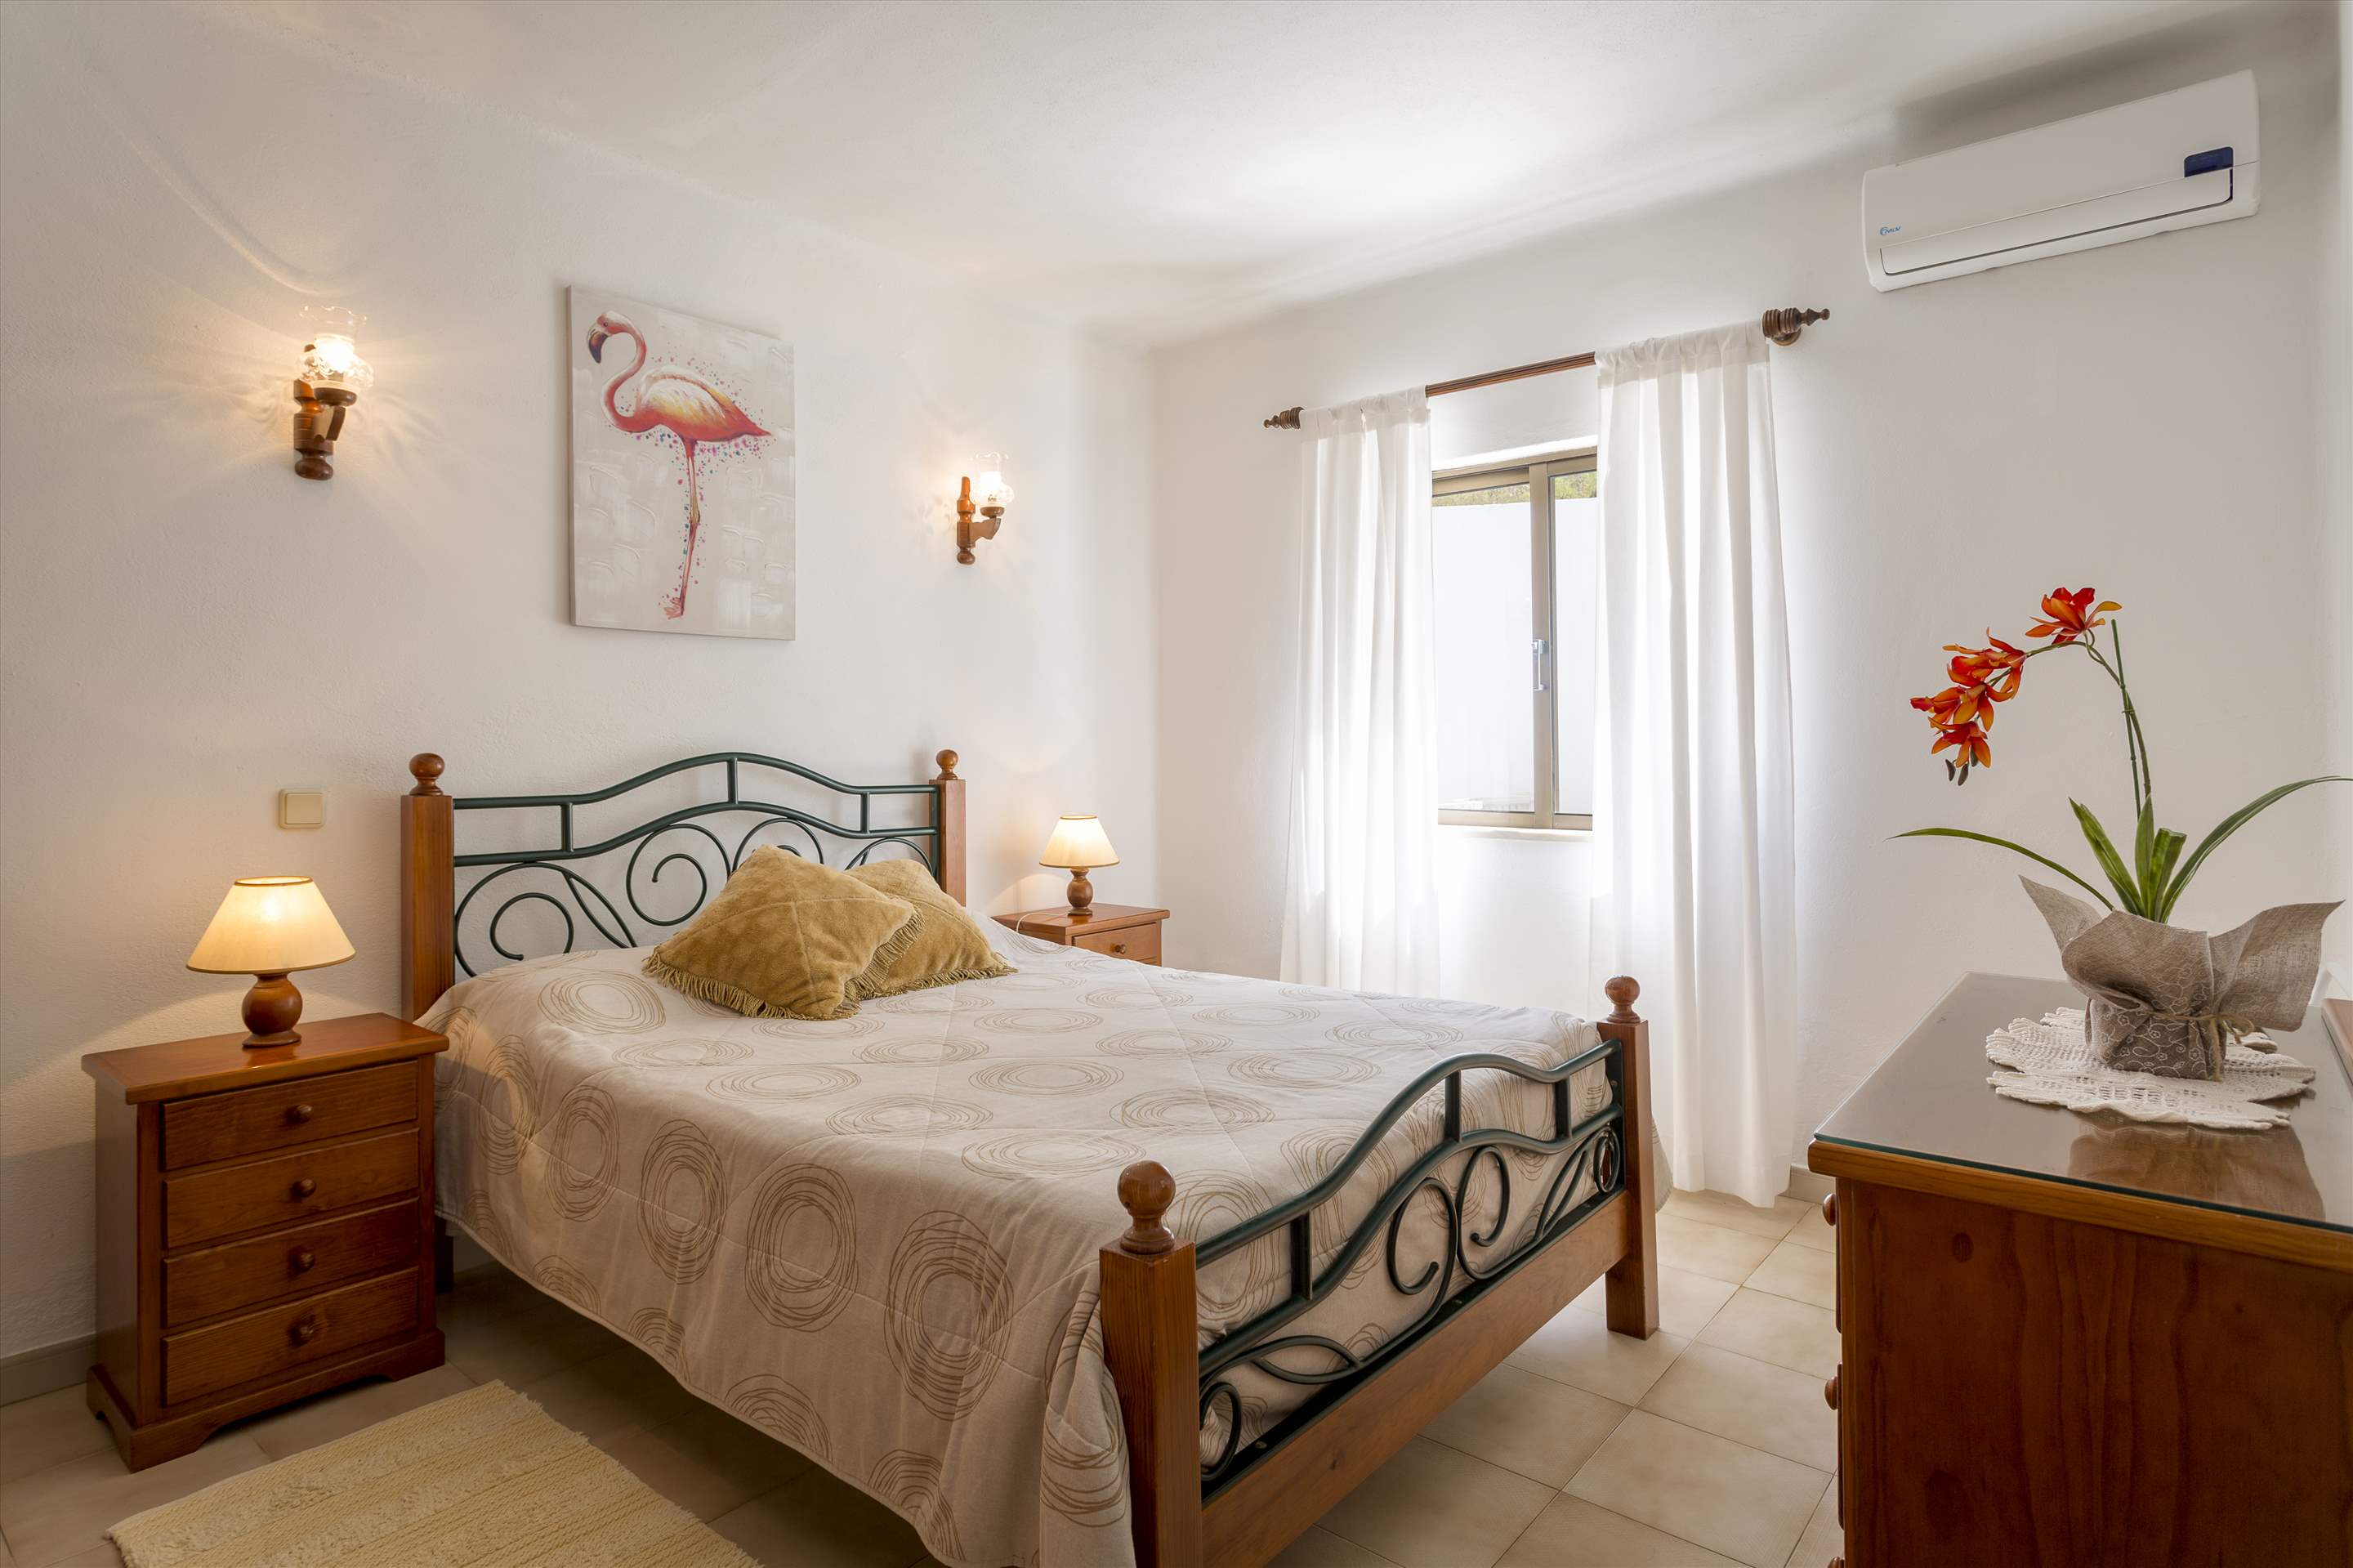 Villa Do Cerro, 3 bedroom villa in Carvoeiro Area, Algarve Photo #8